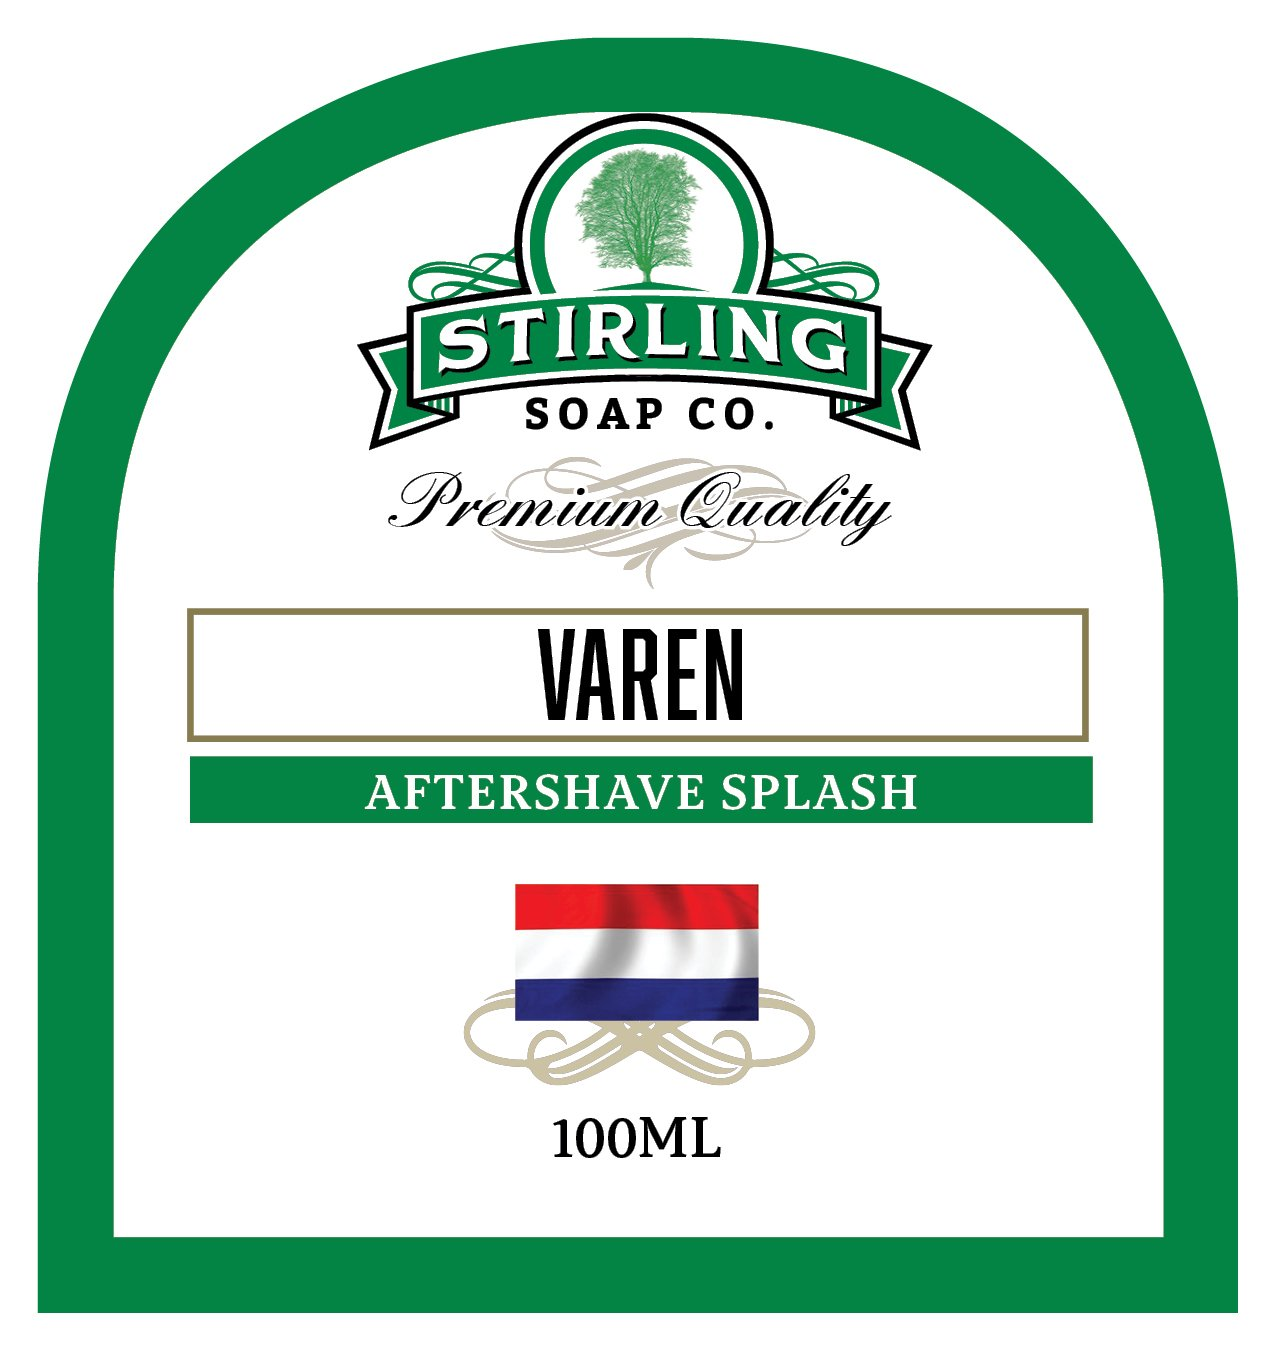 Stirling Soap Co. - Varen - Aftershave image